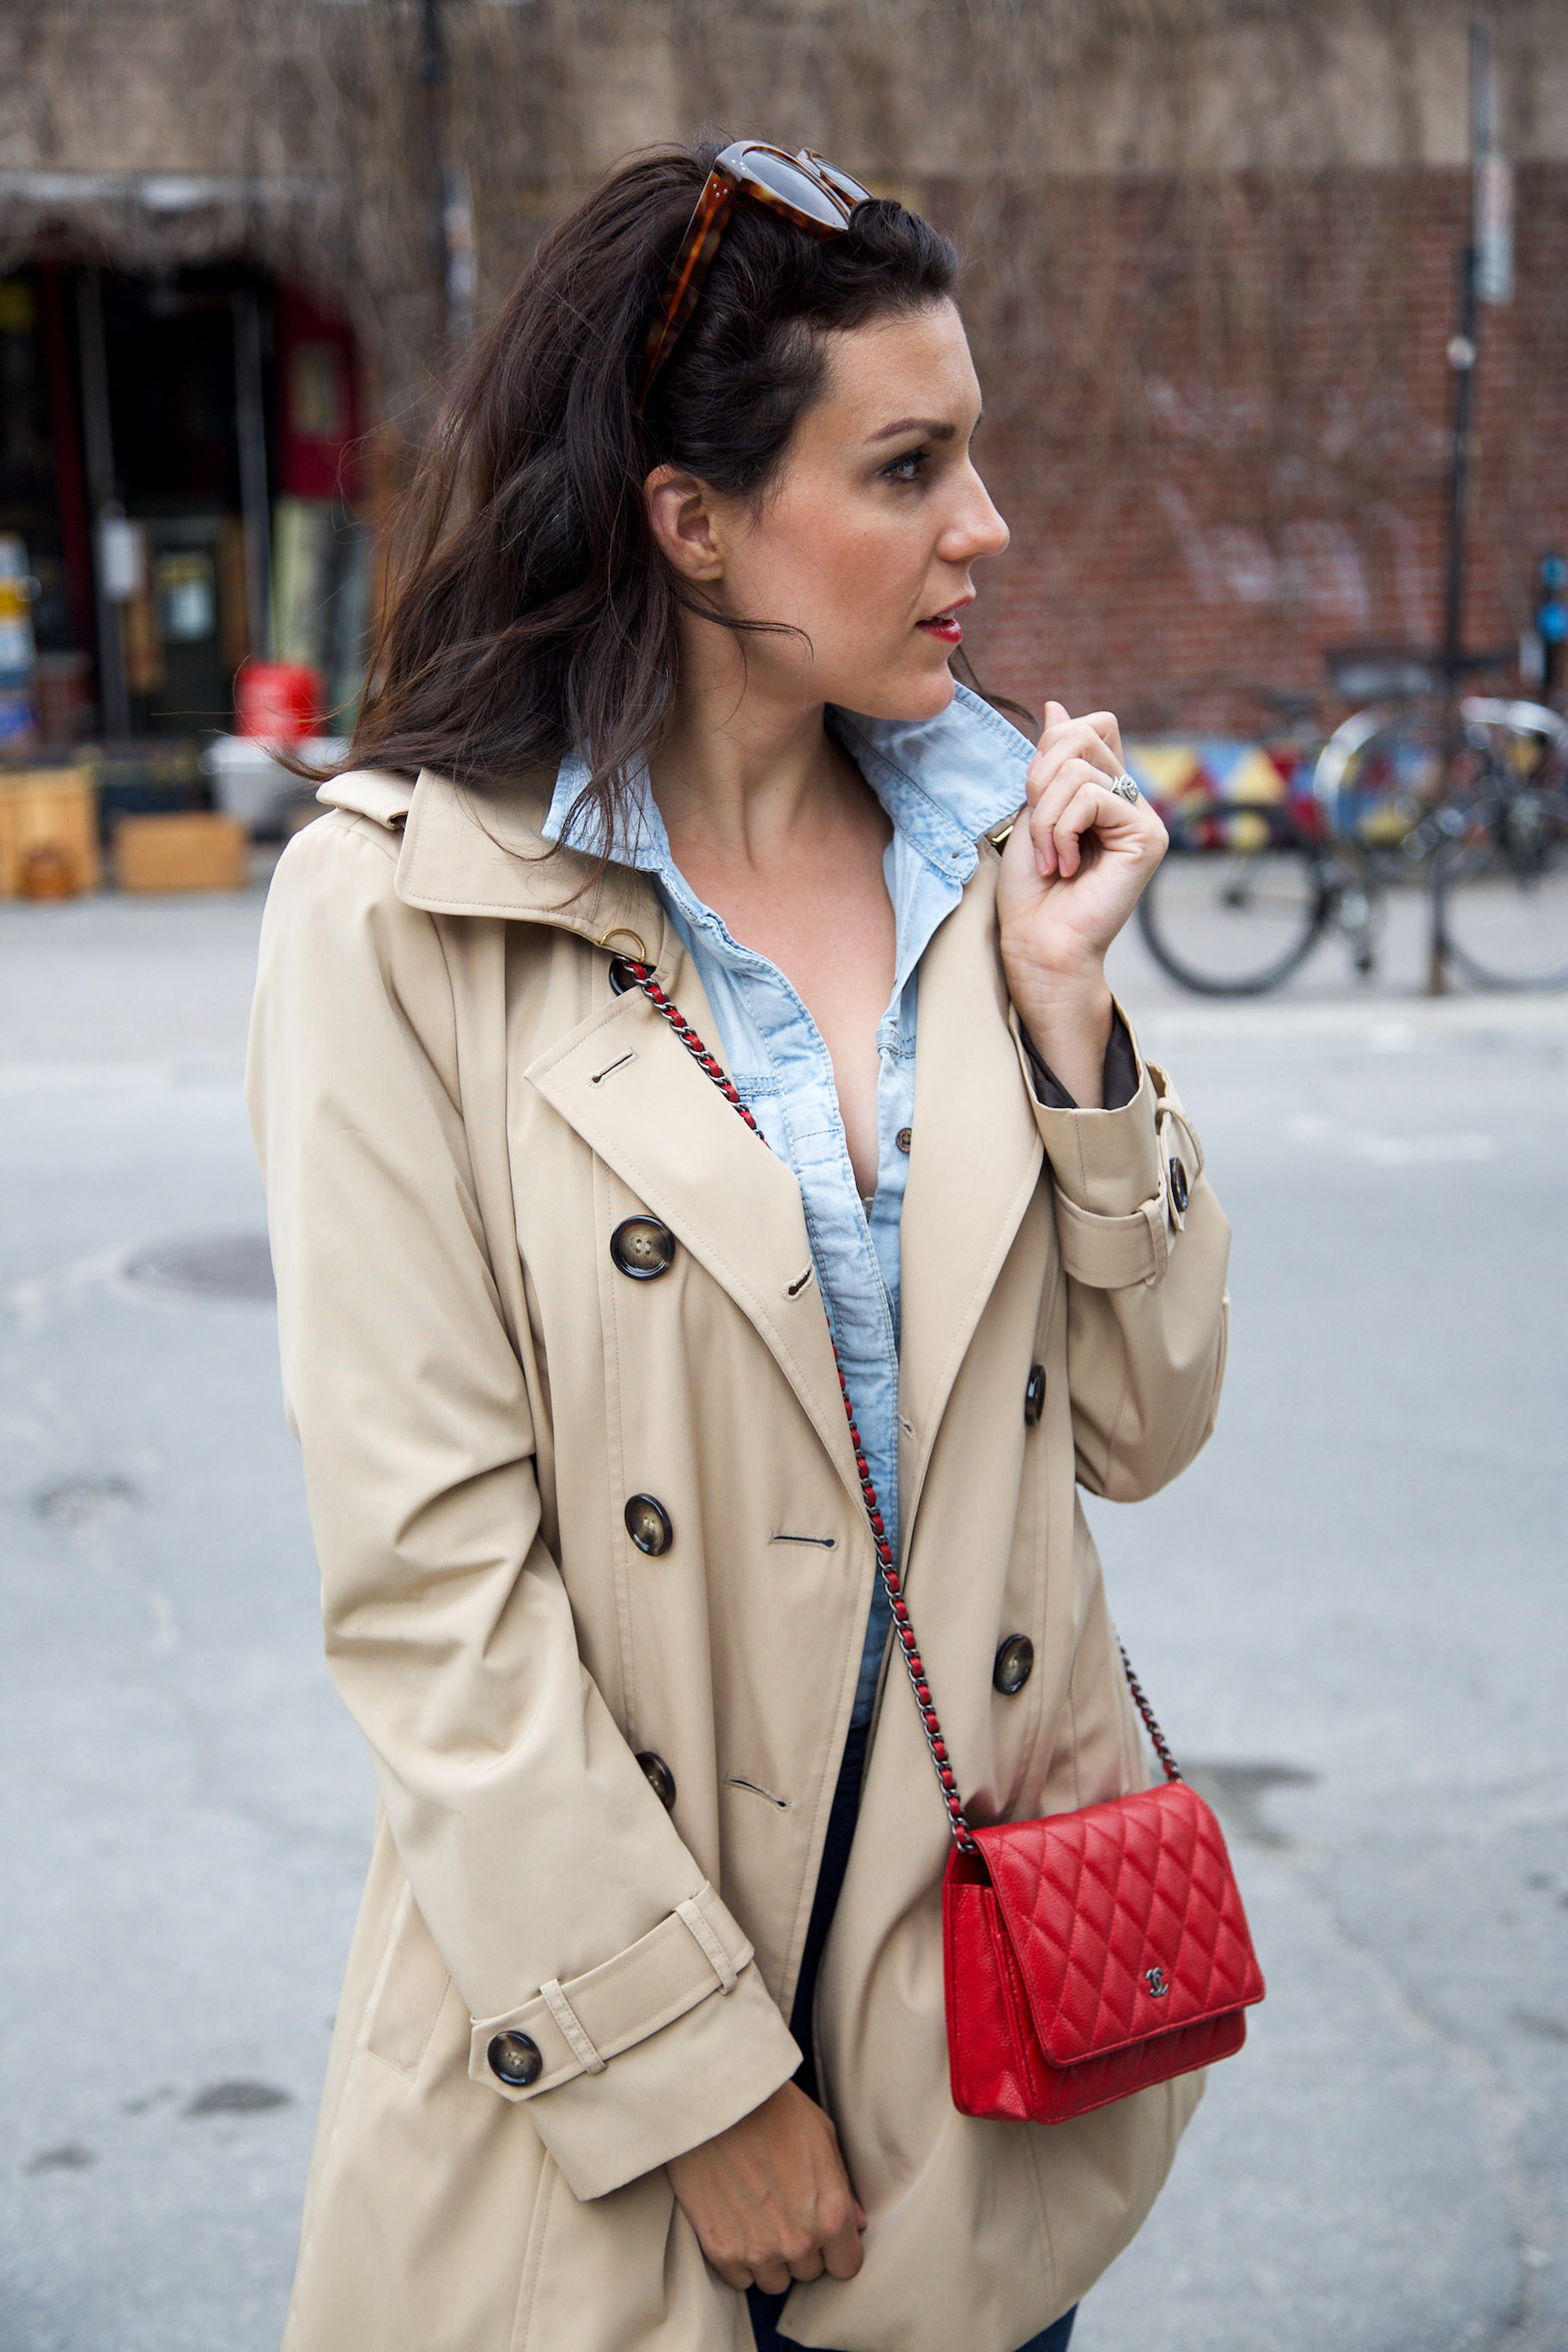 denim-on-denim-outfit-with-trench-coat-and-red-accessories6.jpg